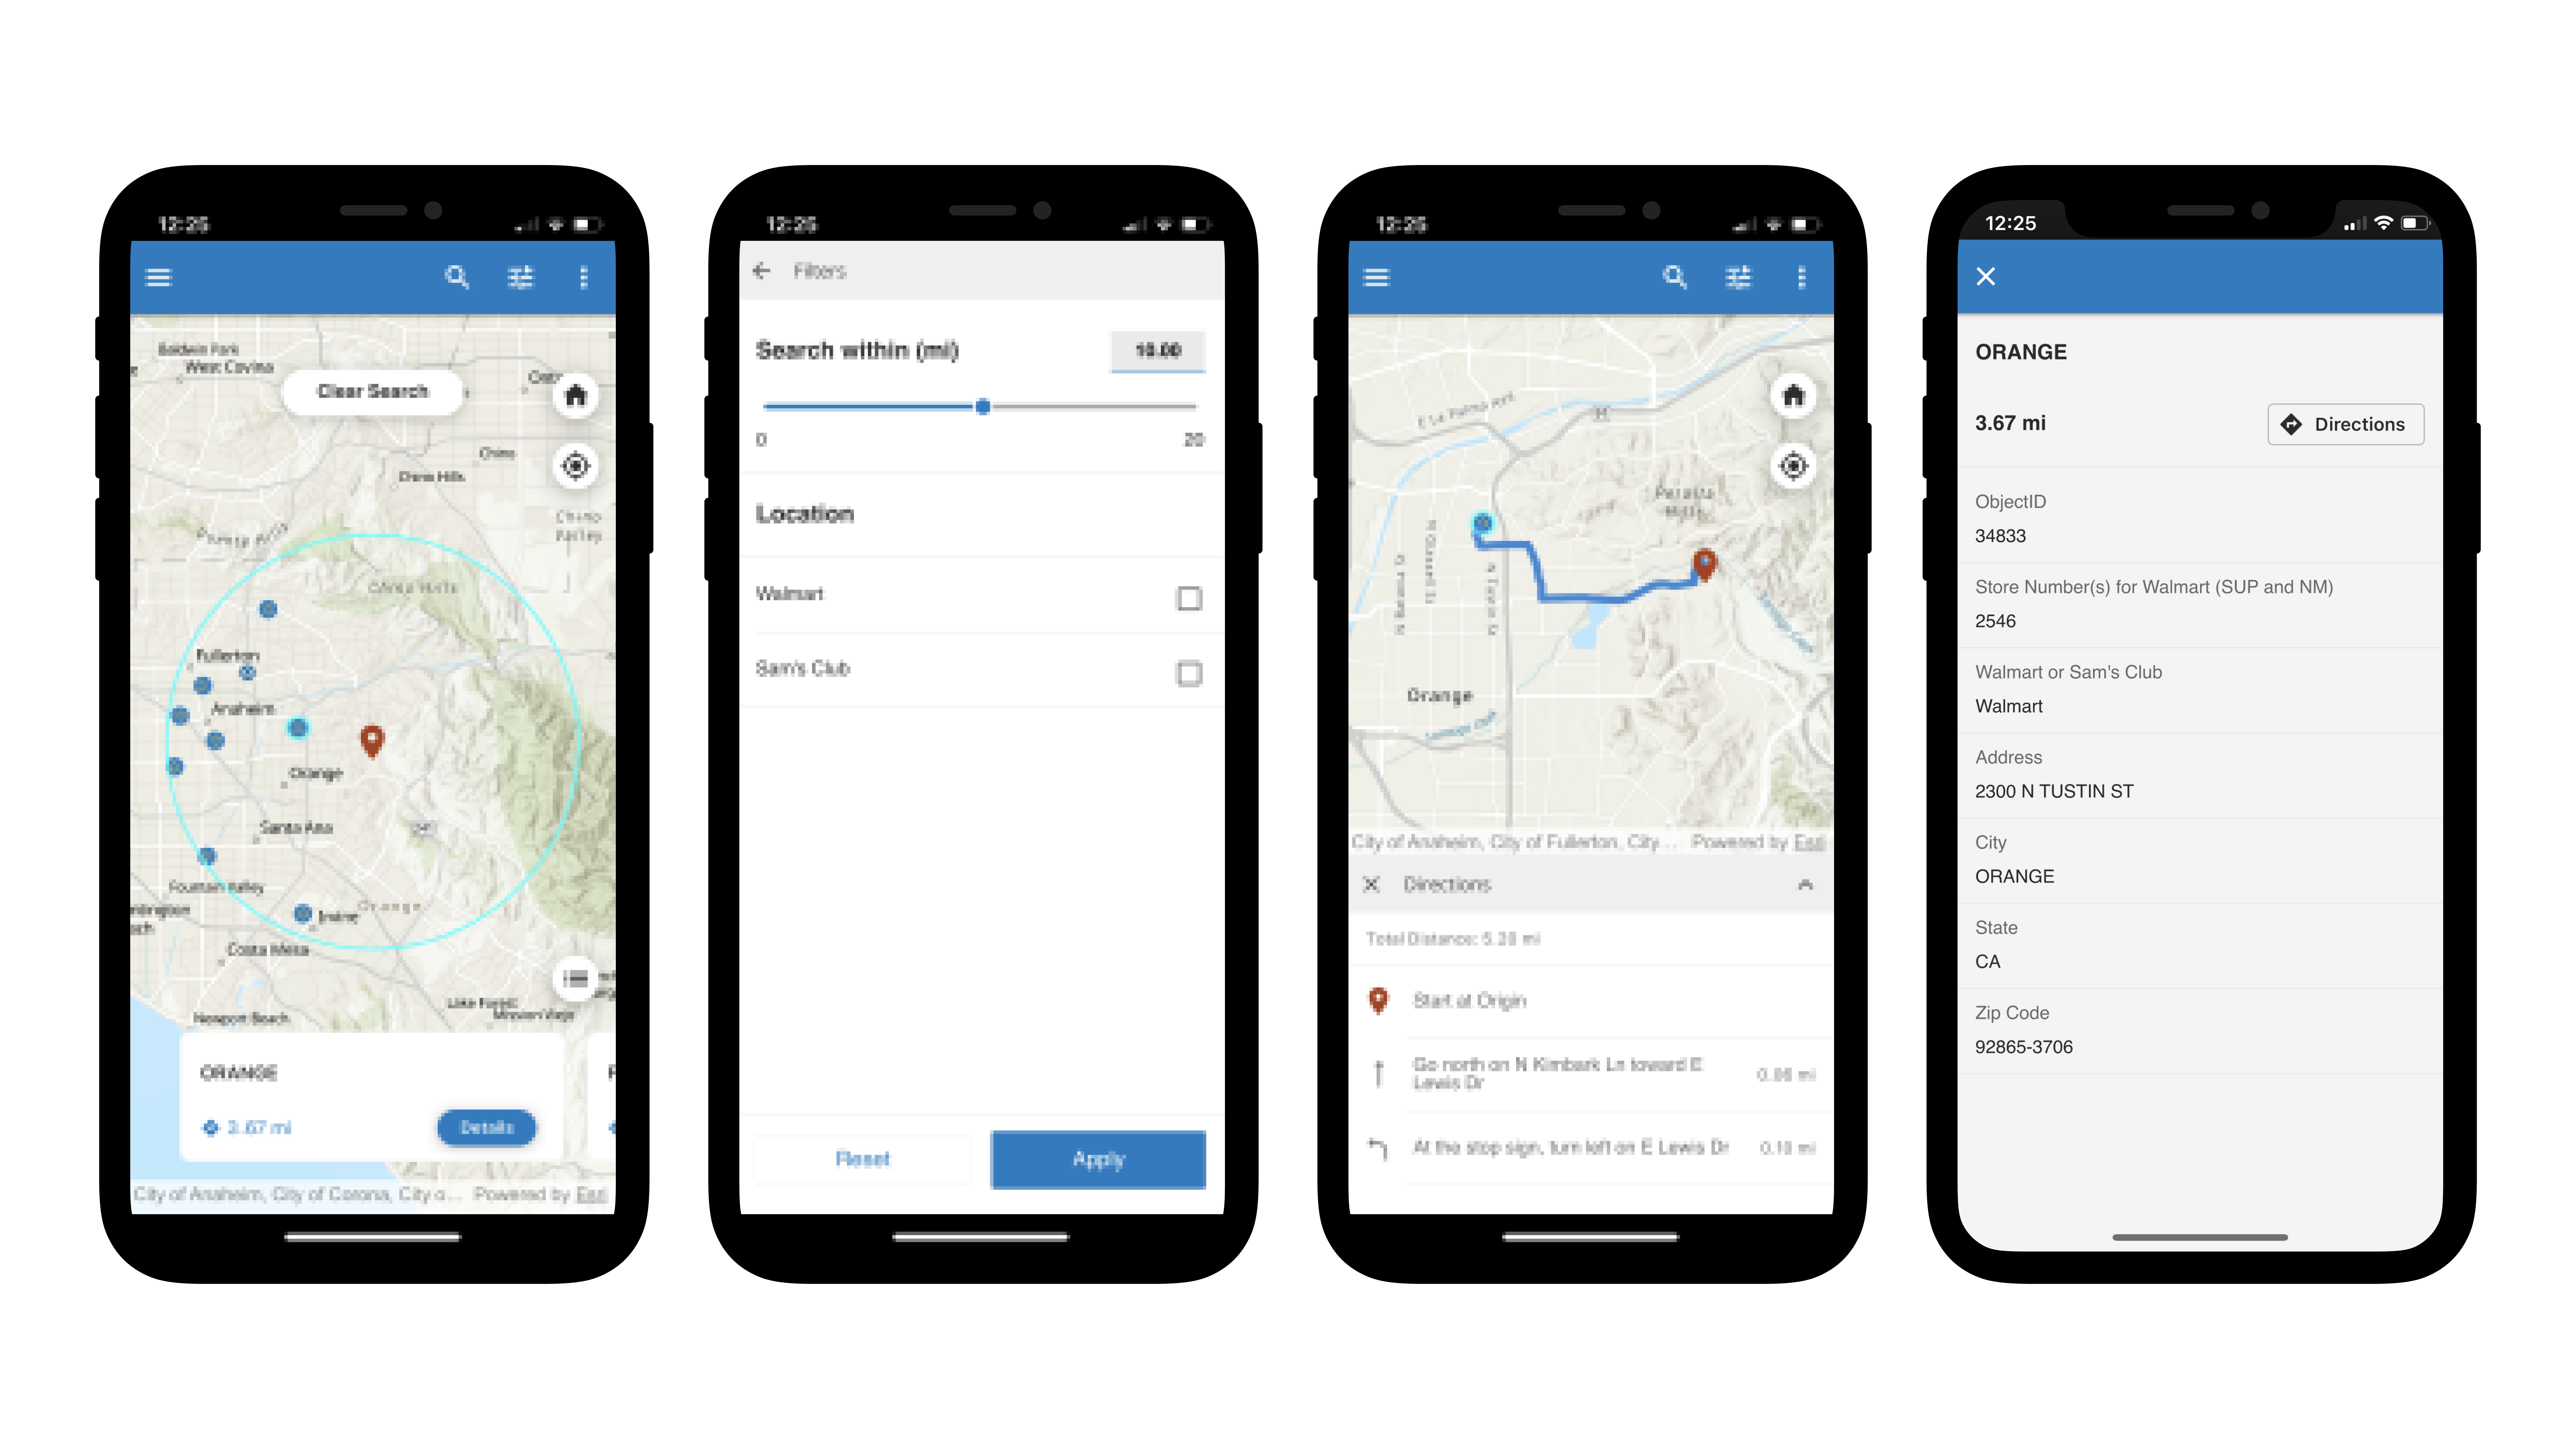 Demonstrating workflow of the Nearby template app